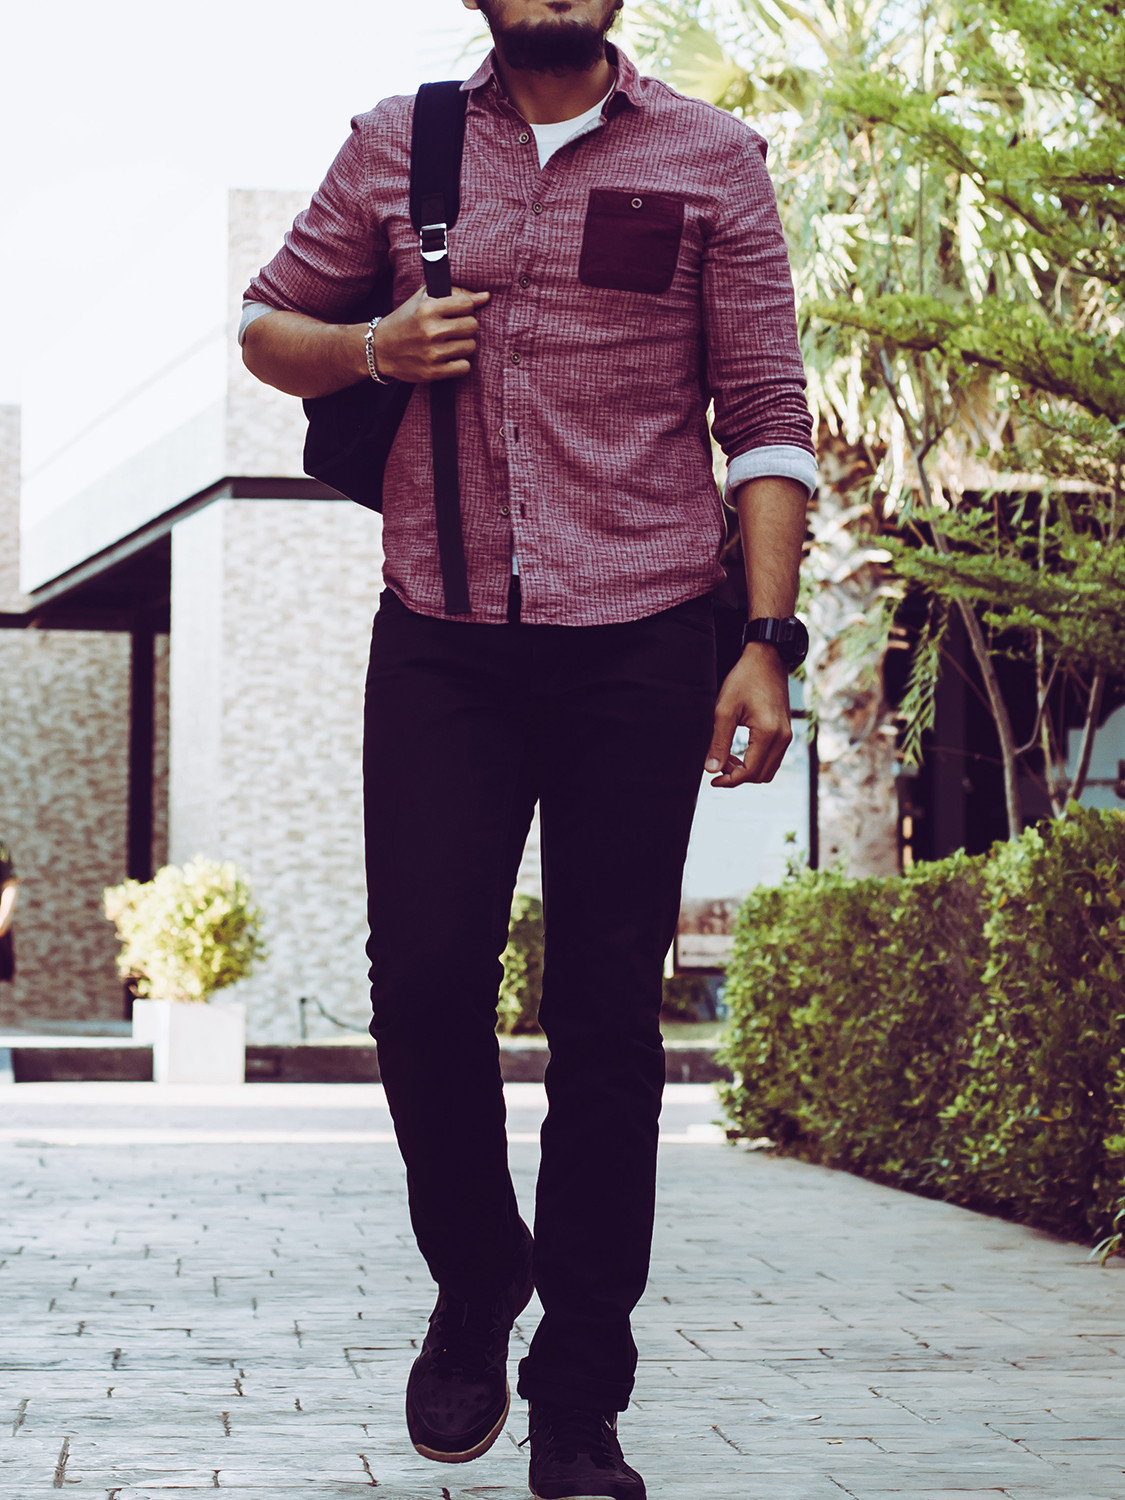 Men's outfit idea for 2021 with small-check casual shirt, black jeans, black desert boots. Suitable for spring and autumn.